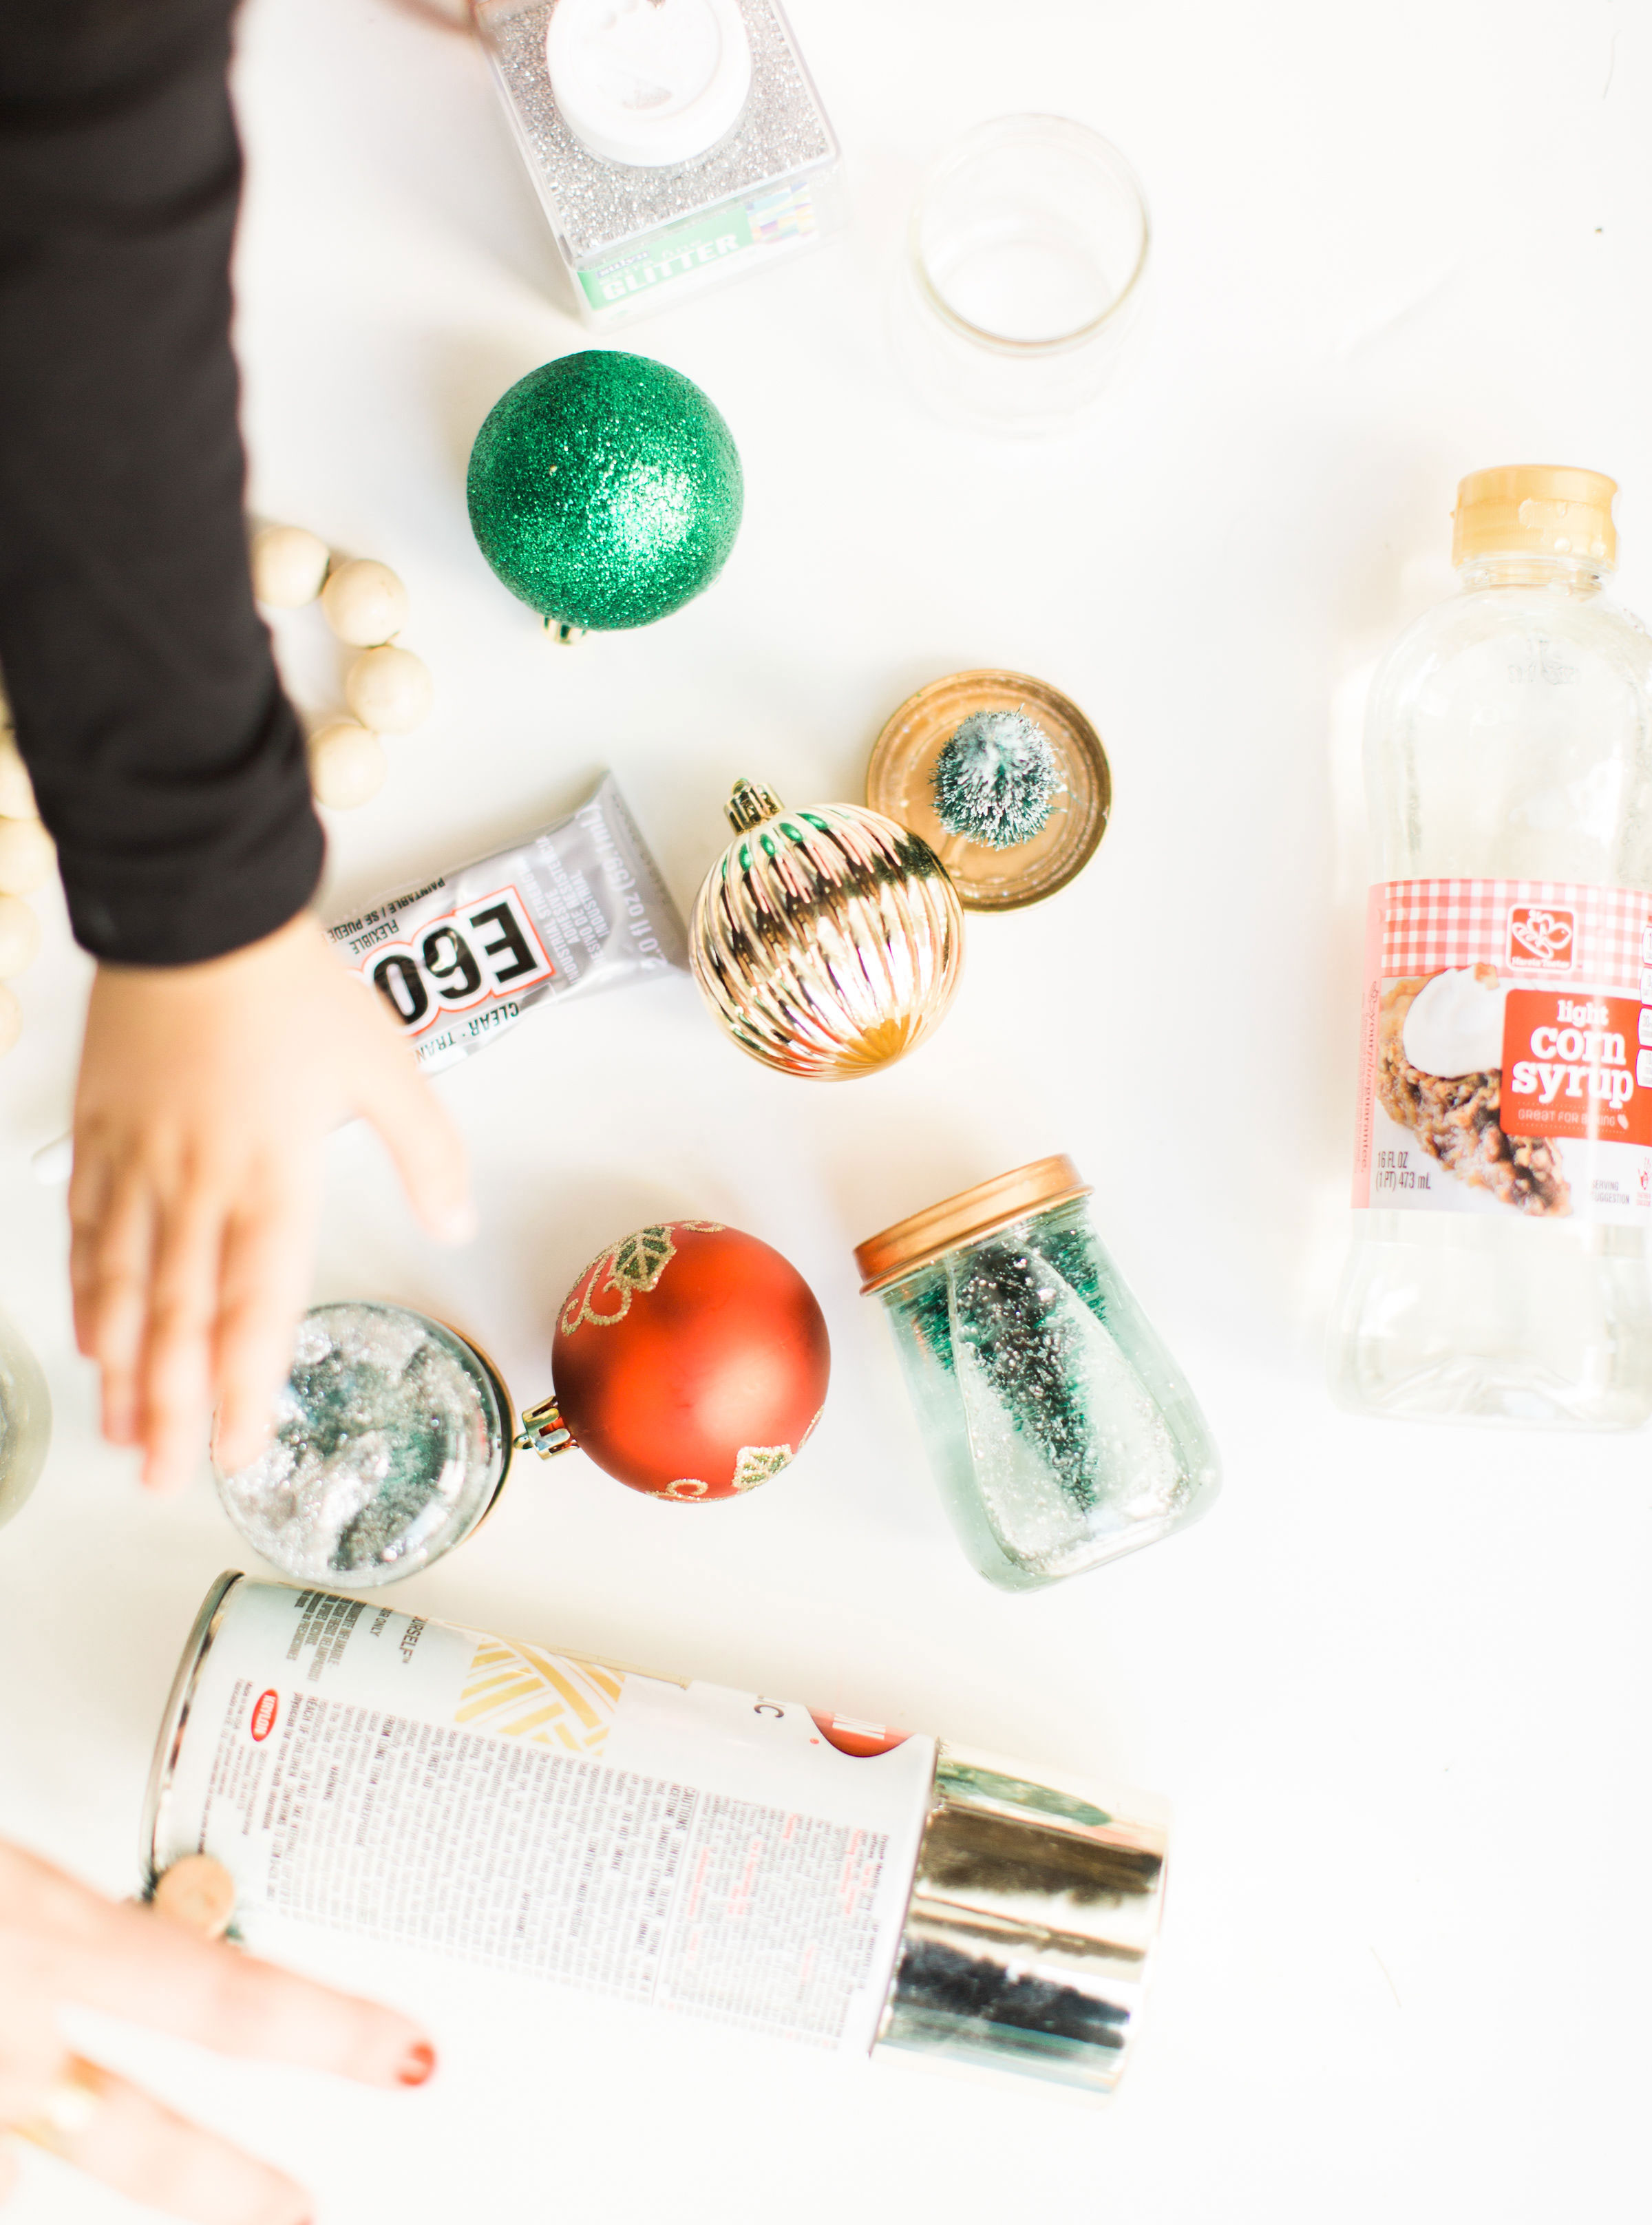 Glitter DIY snow globes are fun to make, are a great craft to do with kids, and double as a calm down sensory bottle for a little quiet time on days when the whole family is going a little stir crazy! Click through for the details. #kidsdiy #kidscraft #diysnowglobes #howtomakesnowglobes #sensorybottles #sensoryglobes #toddlercraft #wintercraft #christmas #christmasdiy #christmascraft | glitterinc.com | @glitterinc